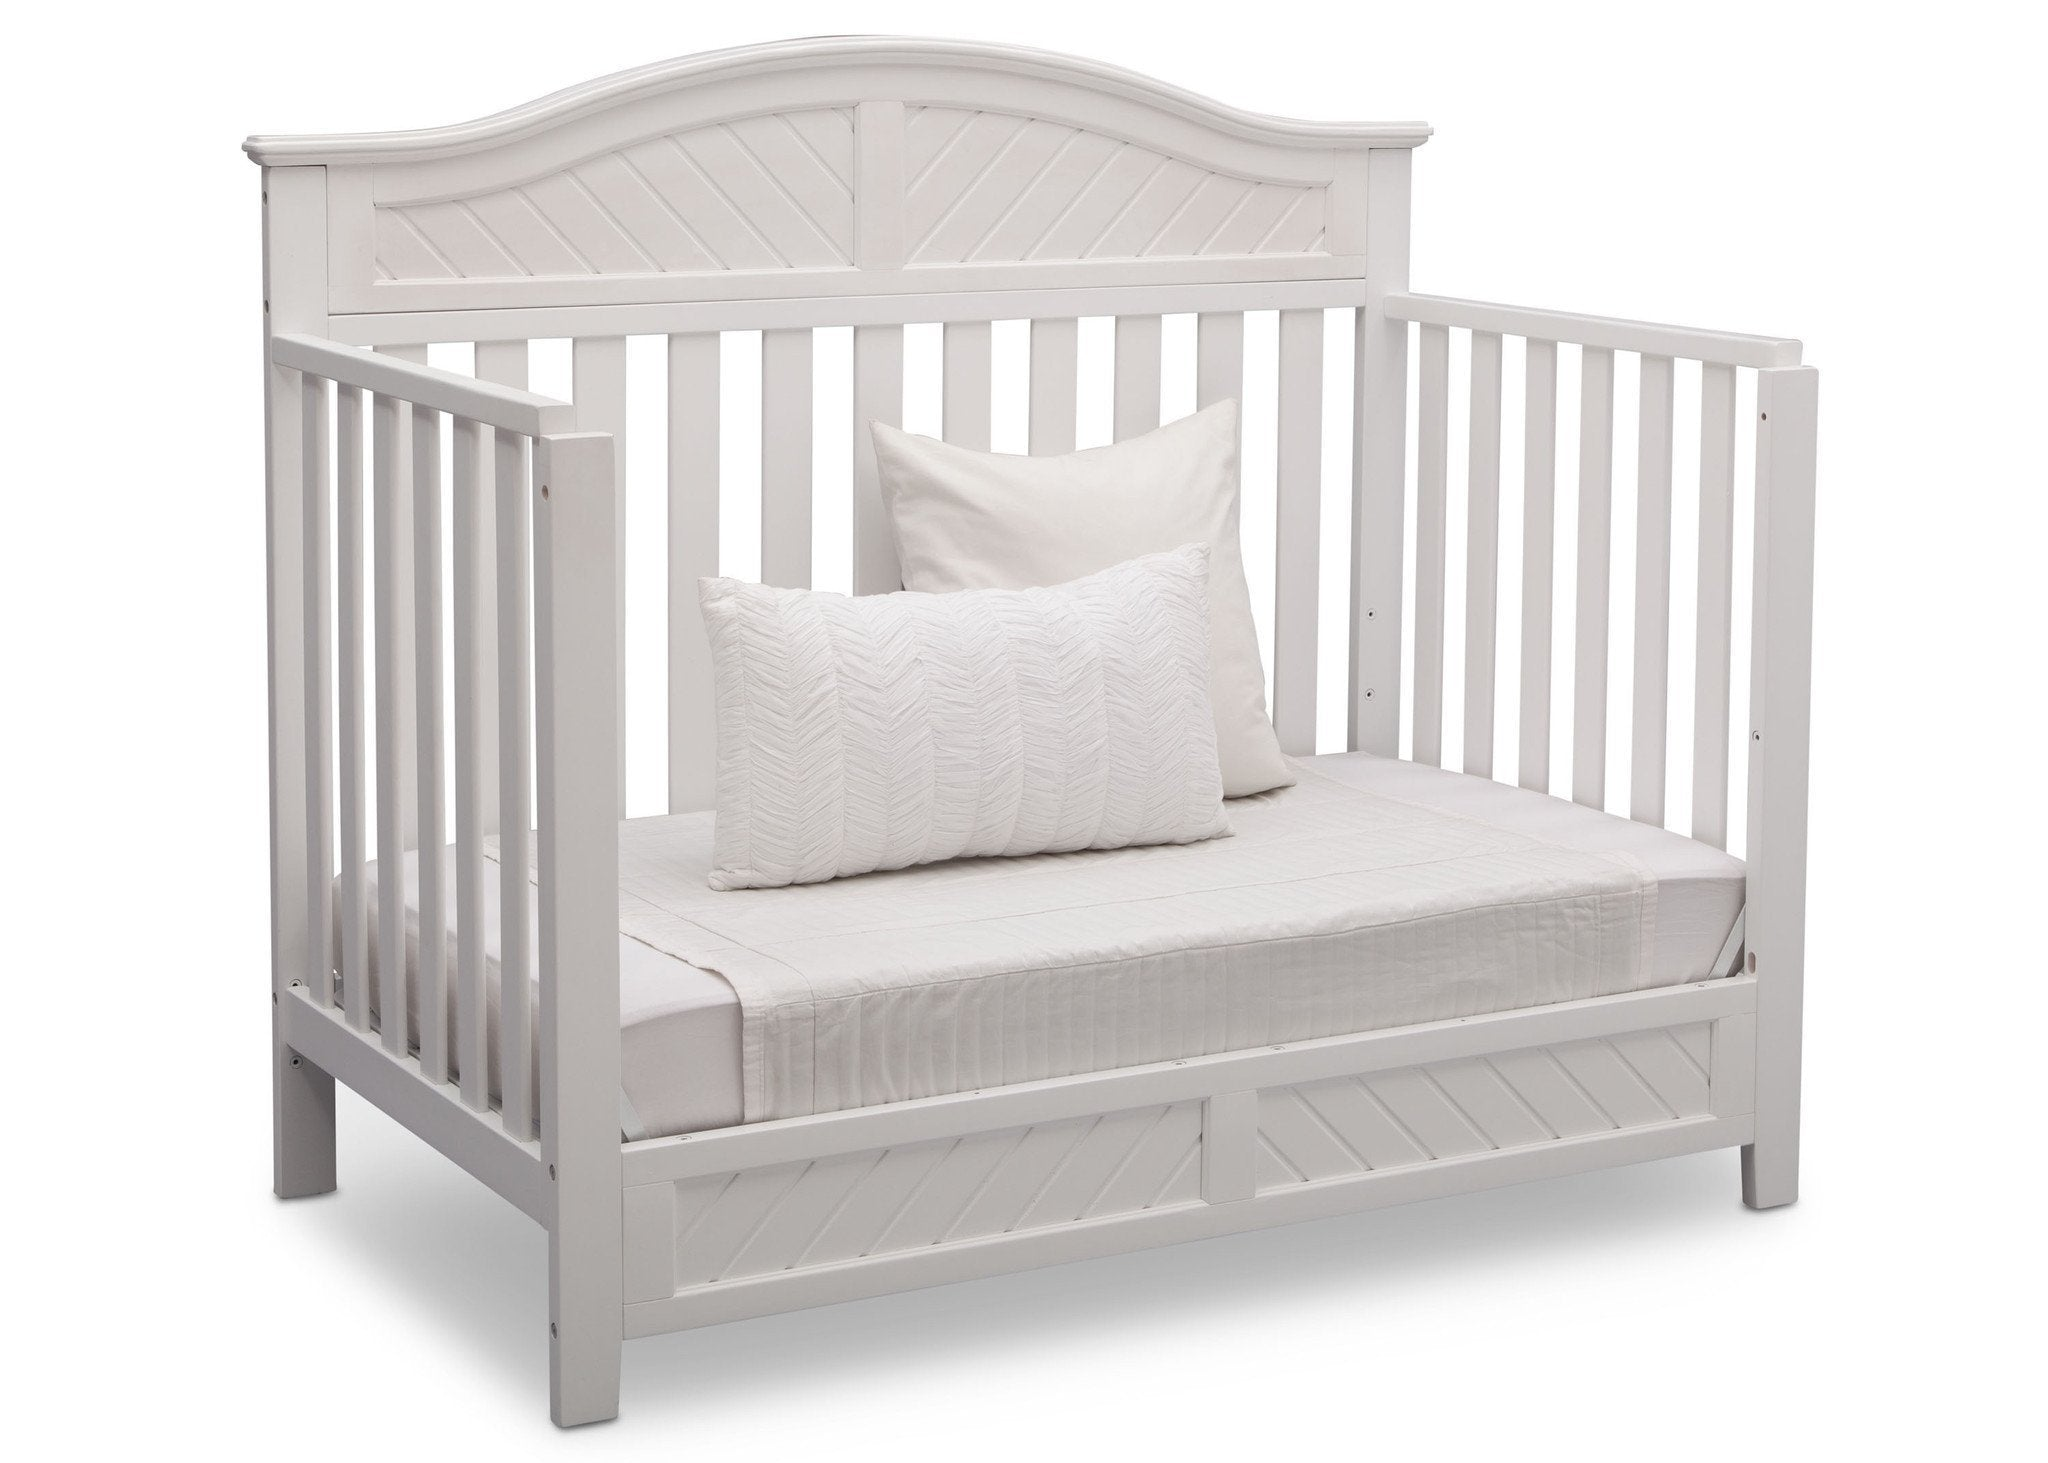 Delta Children Bianca (130) Bennington Elite Curved 4-in-1 Crib angled conversion to daybed a5a